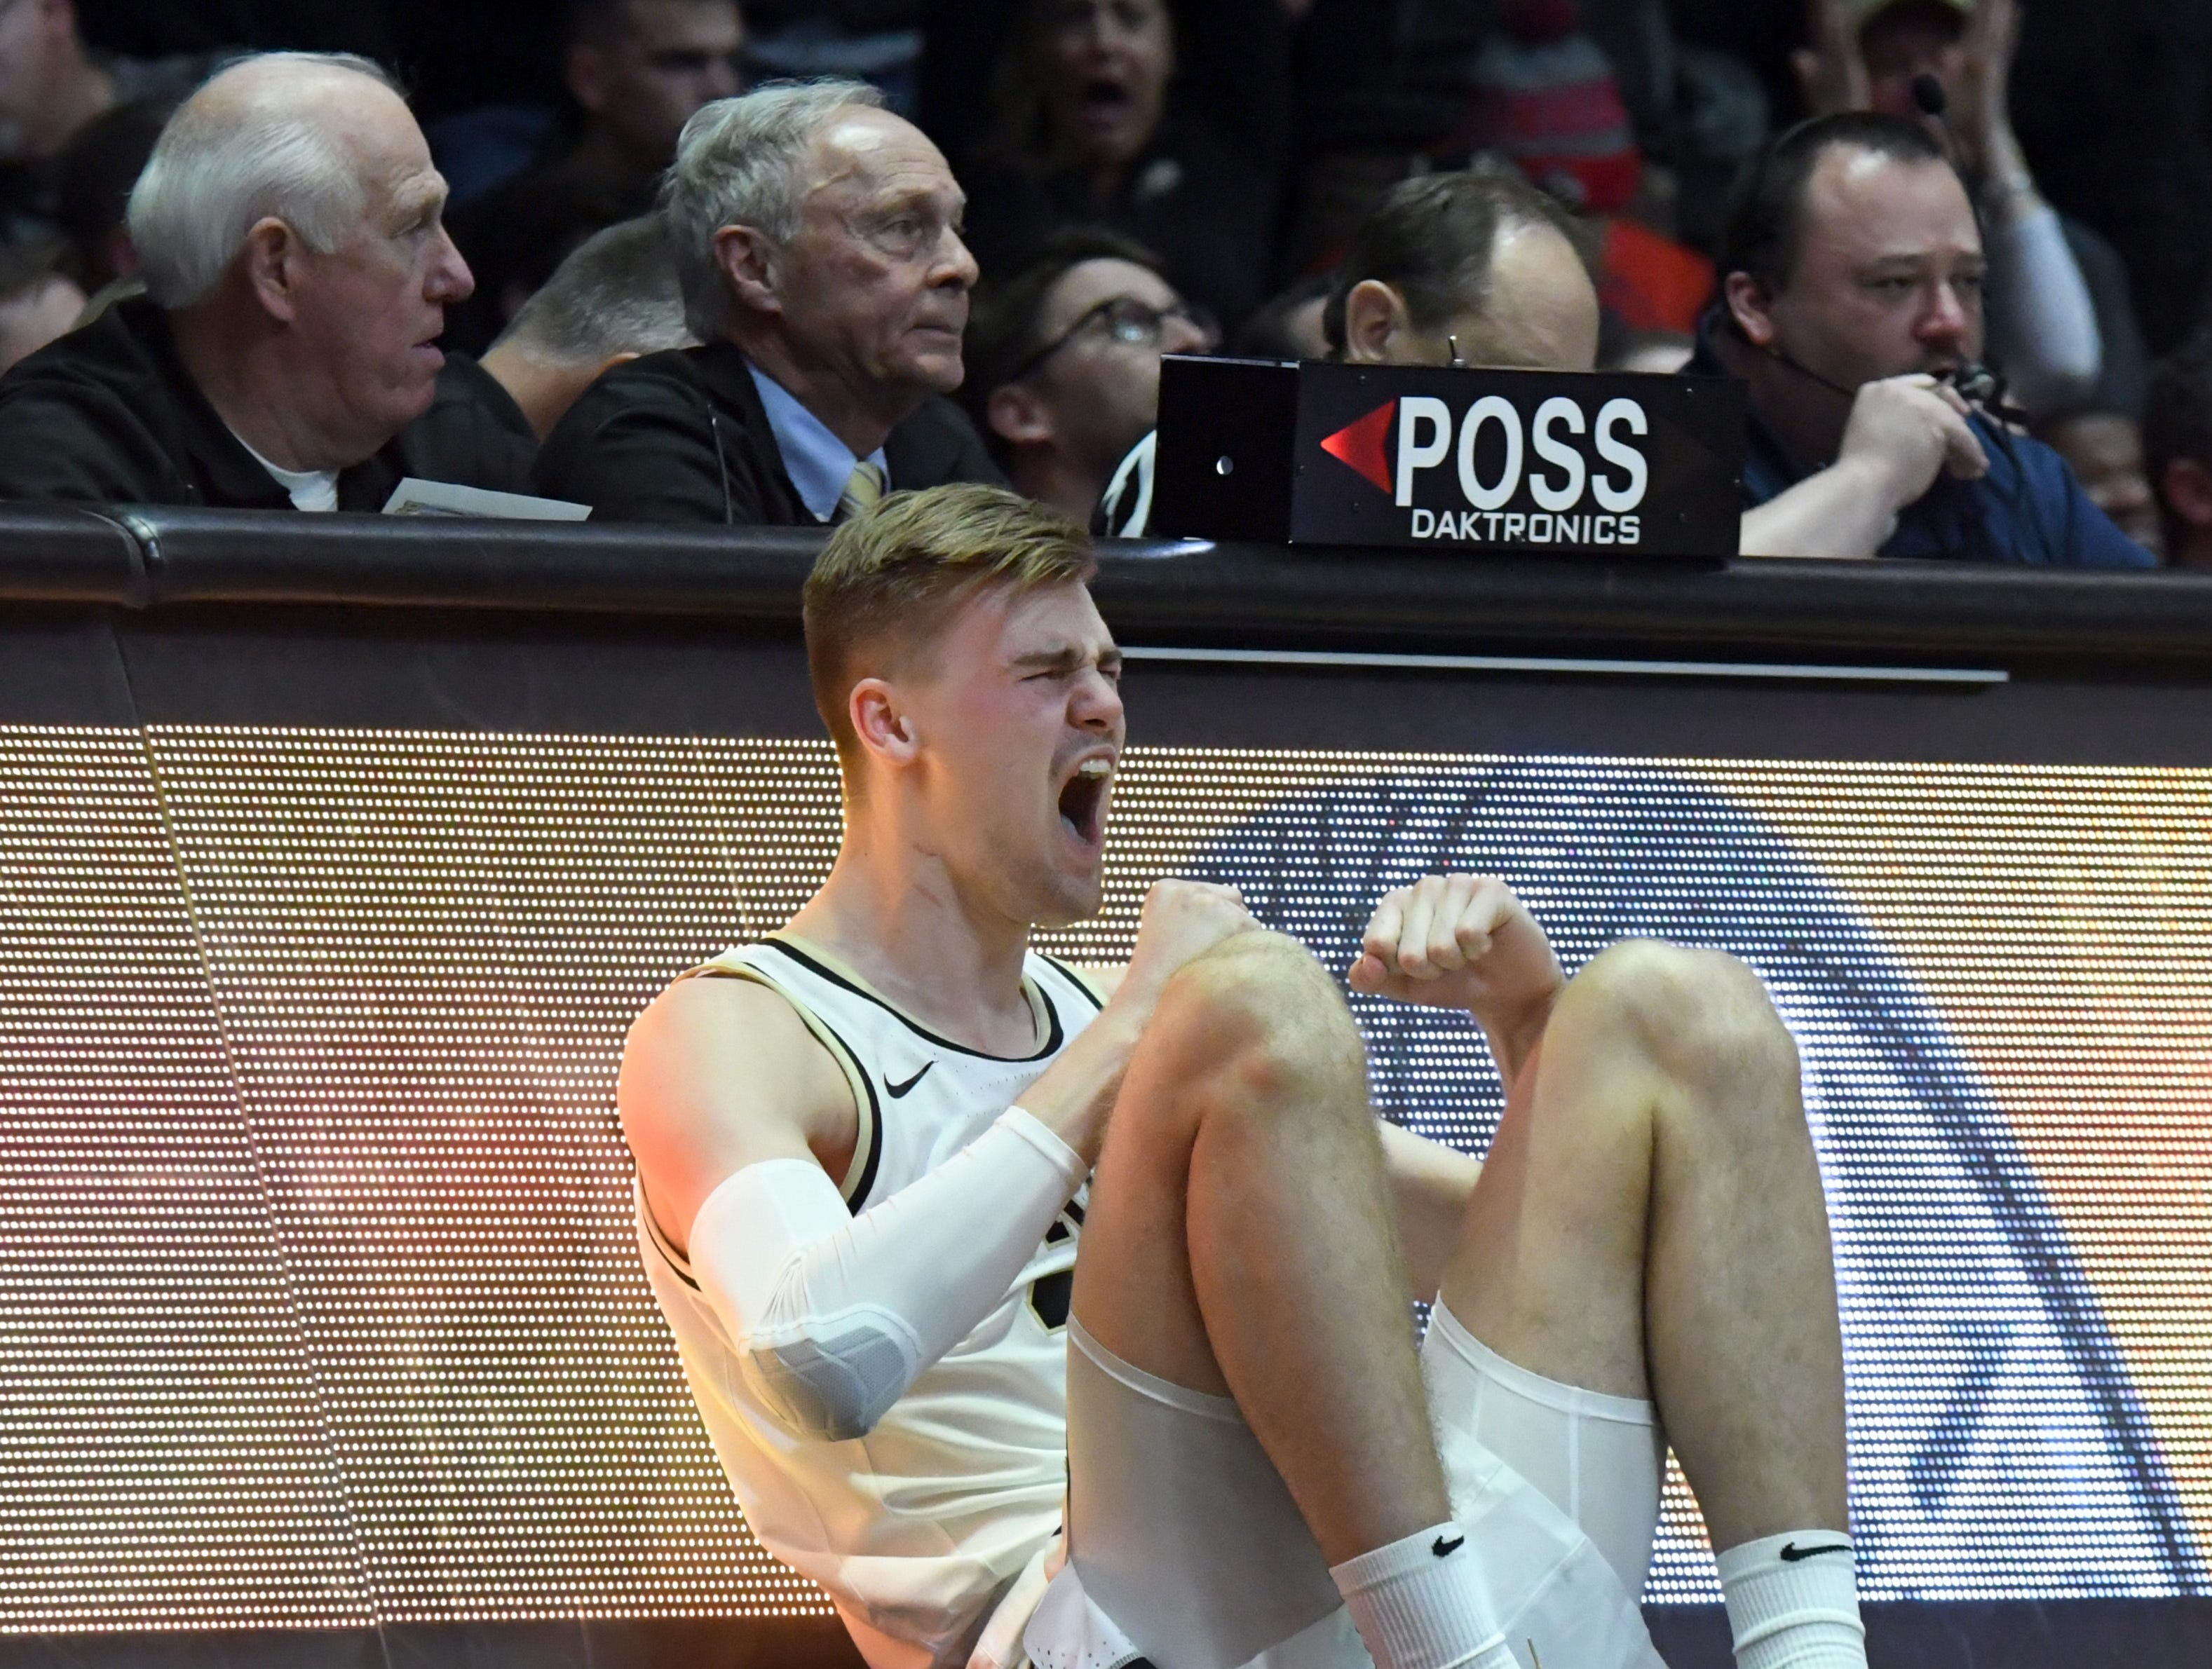 By Frank Oliver for the Journal and Courier --Purdue's Matt Haarms cheers for his team as he waits to enter the game in the first half against Ohio State on March 2, 2019 in West Lafayette. Purdue defeated the Buckeyes 86-51.